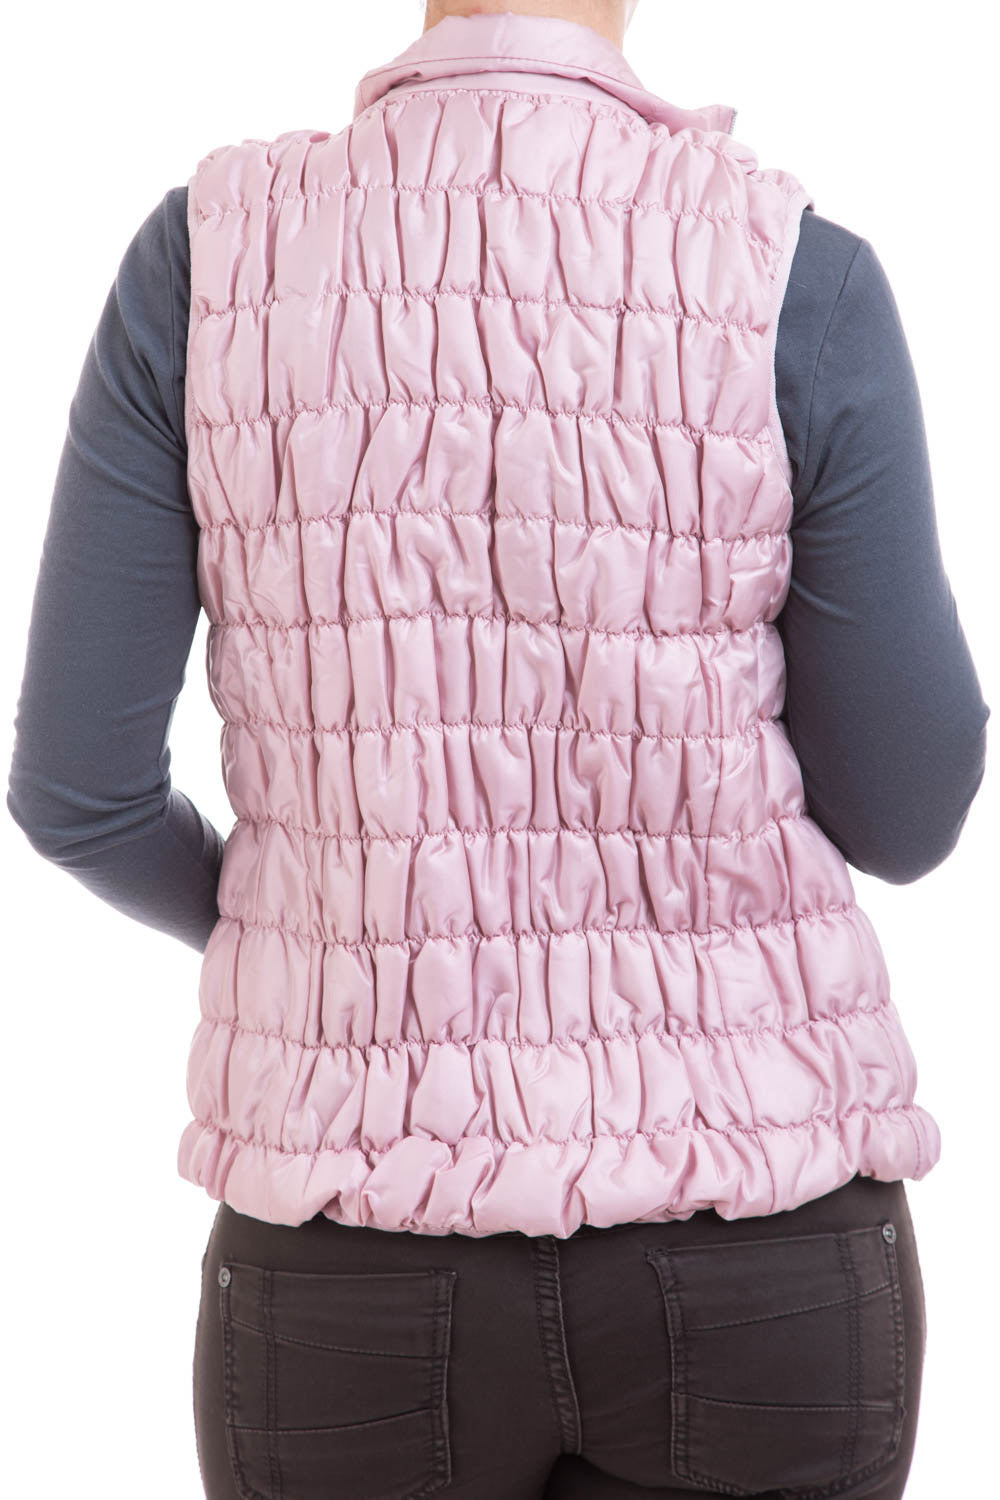 Type 2 Puffy Pink Vest